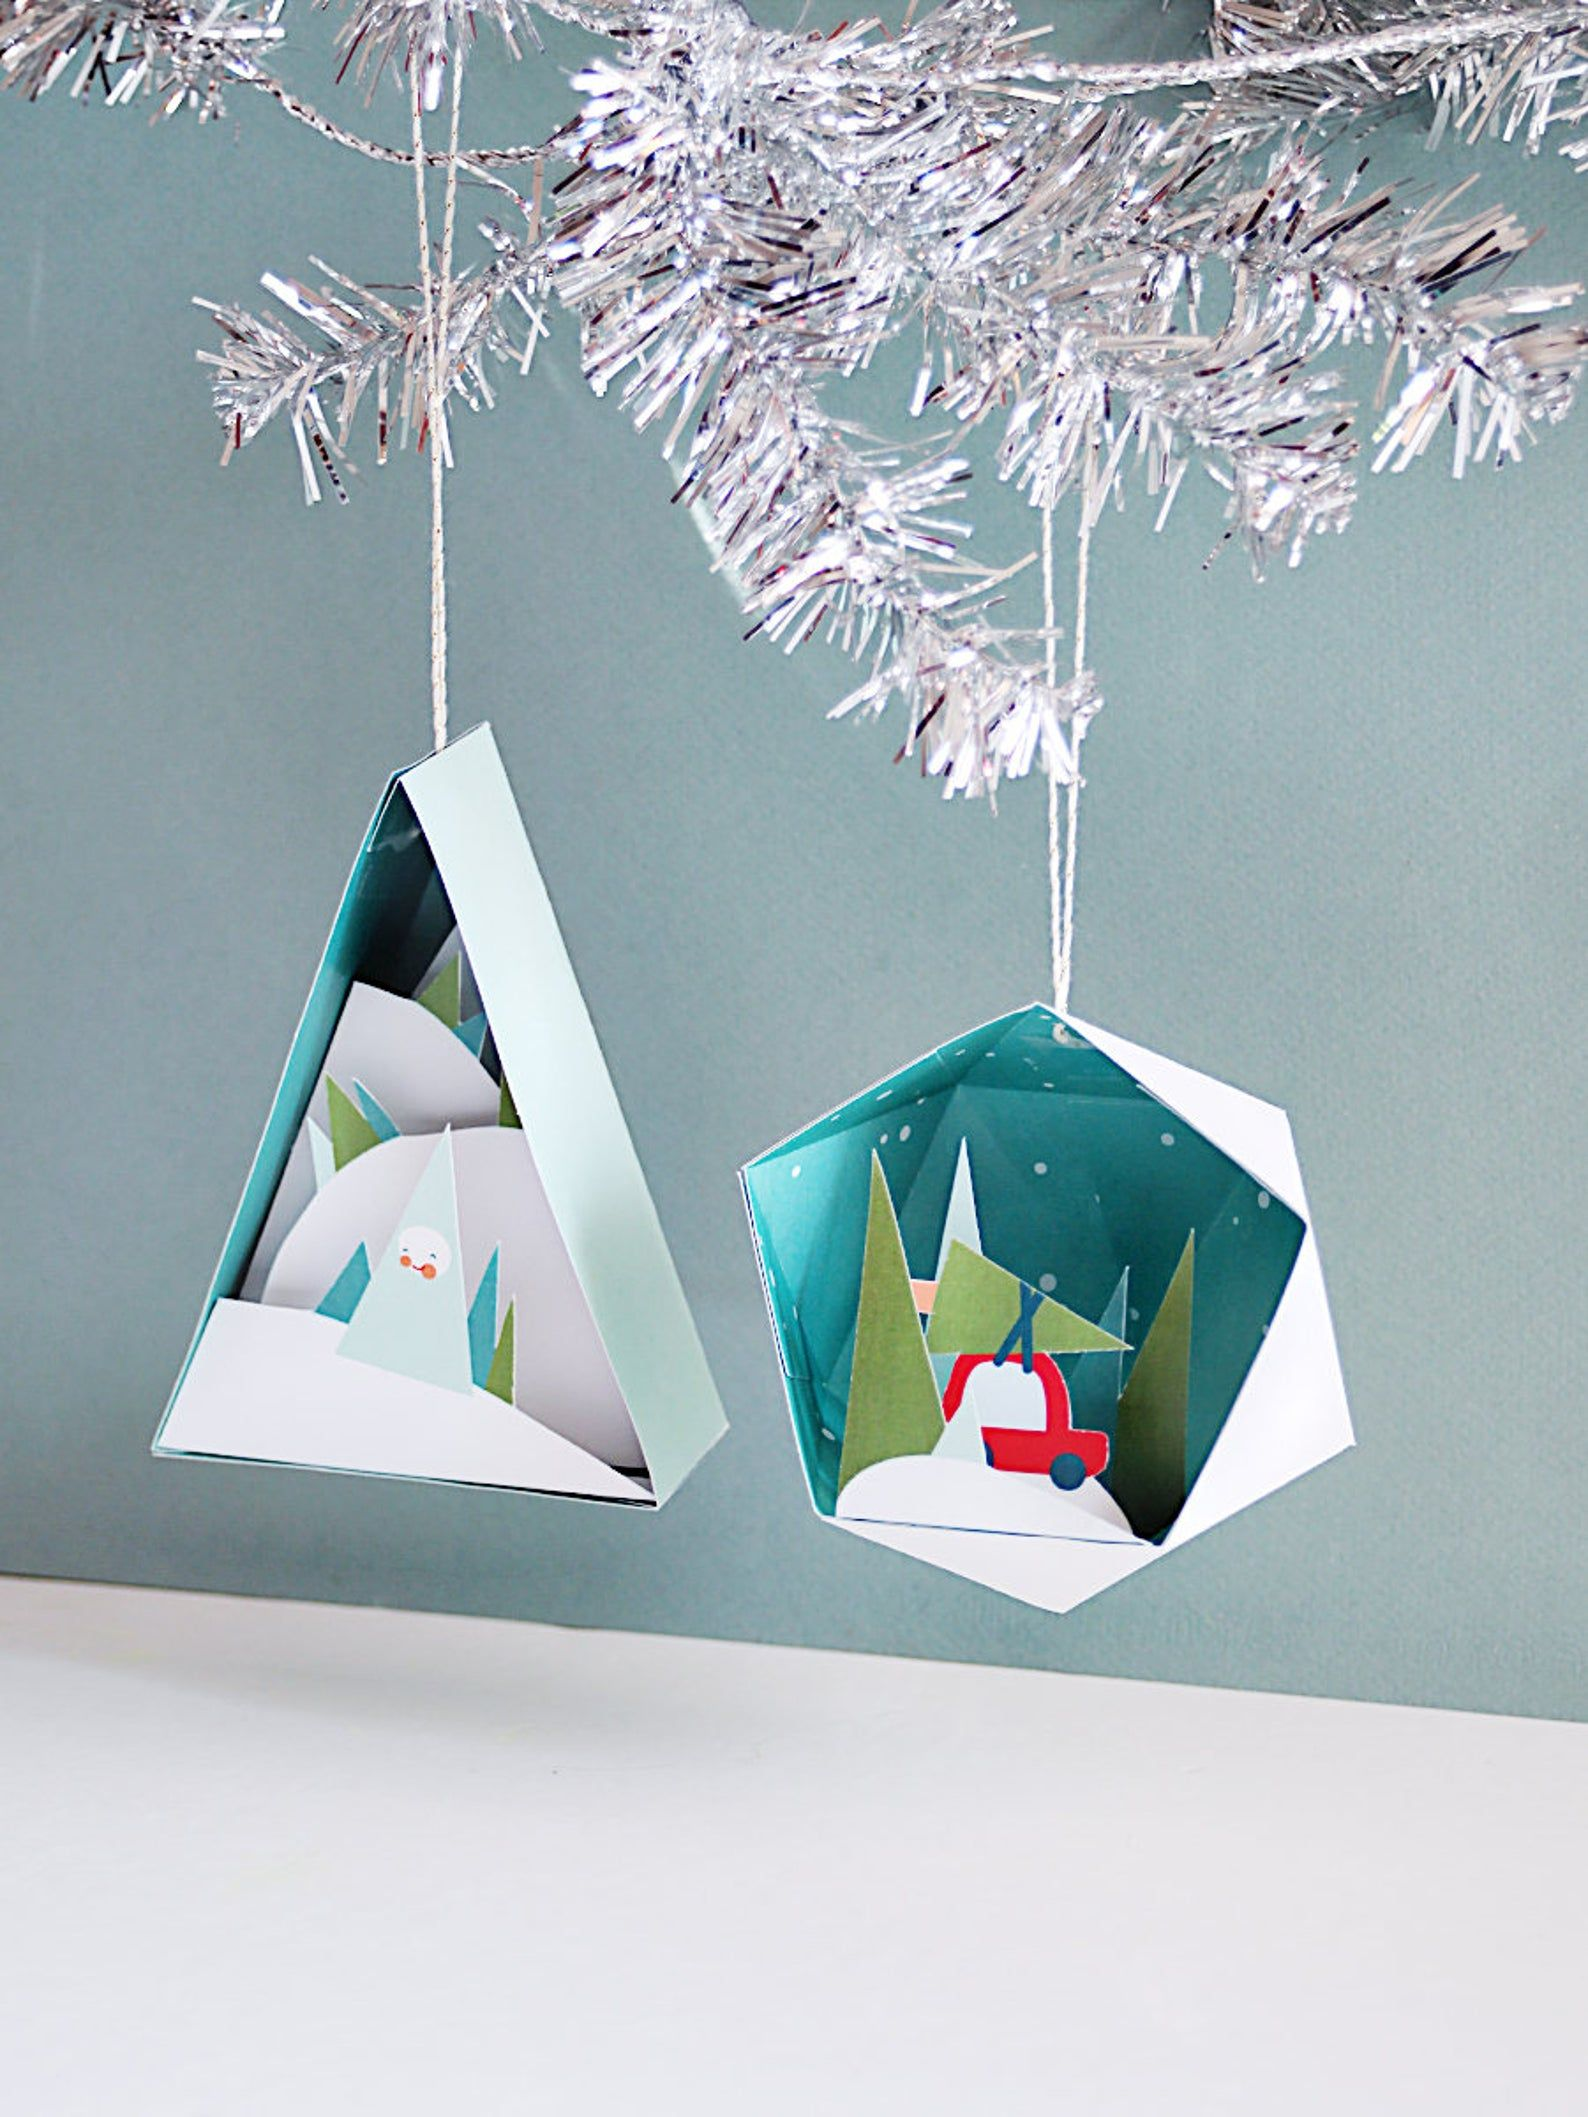 3d Christmas Ornaments 2 4 In A Set Printable Paper Crafts Holiday Diy Paper Christmas Ornaments Christmas Paper Crafts Christmas Ornament Crafts